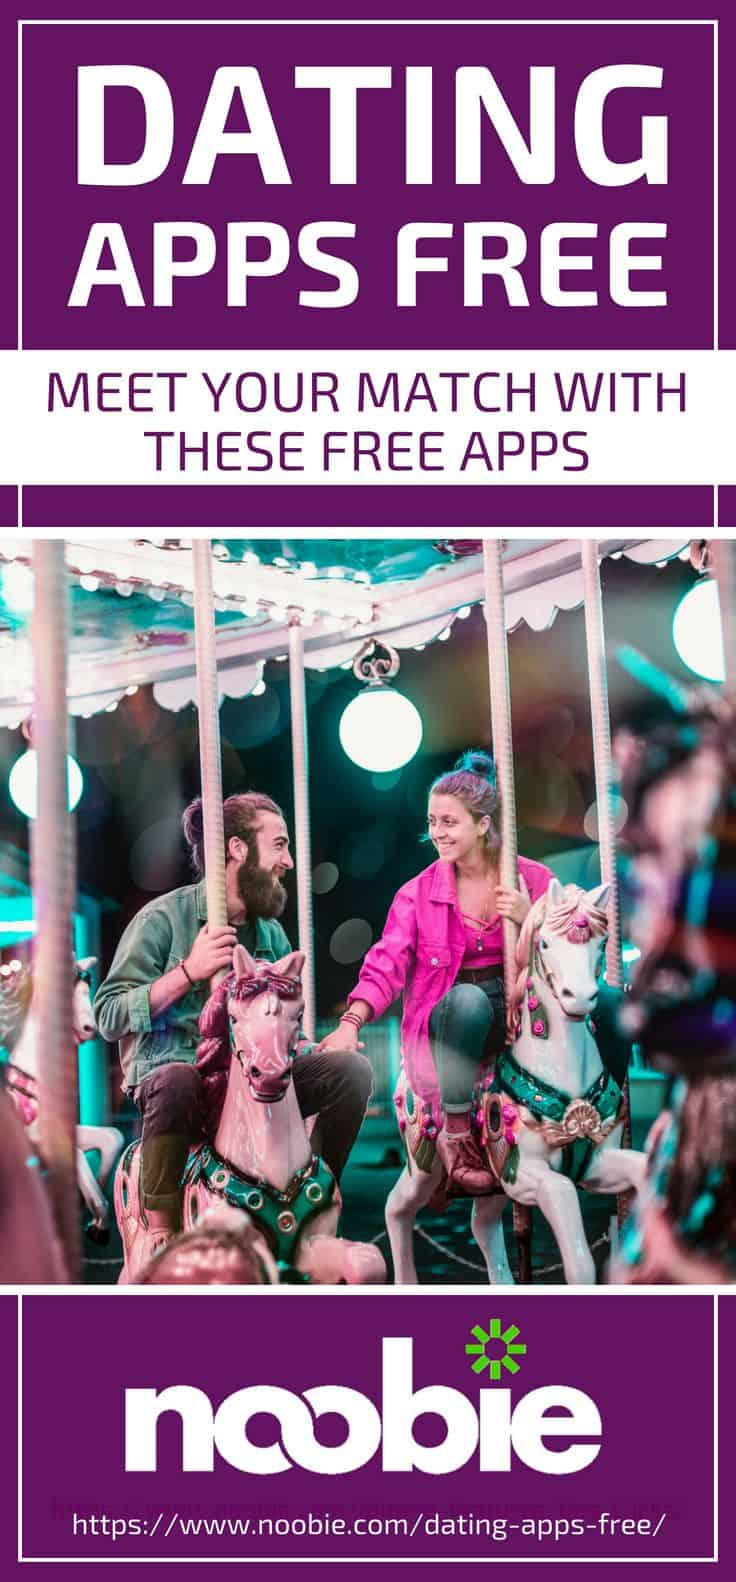 PIN_Dating Apps Free_Meet Your Match With These Free Apps